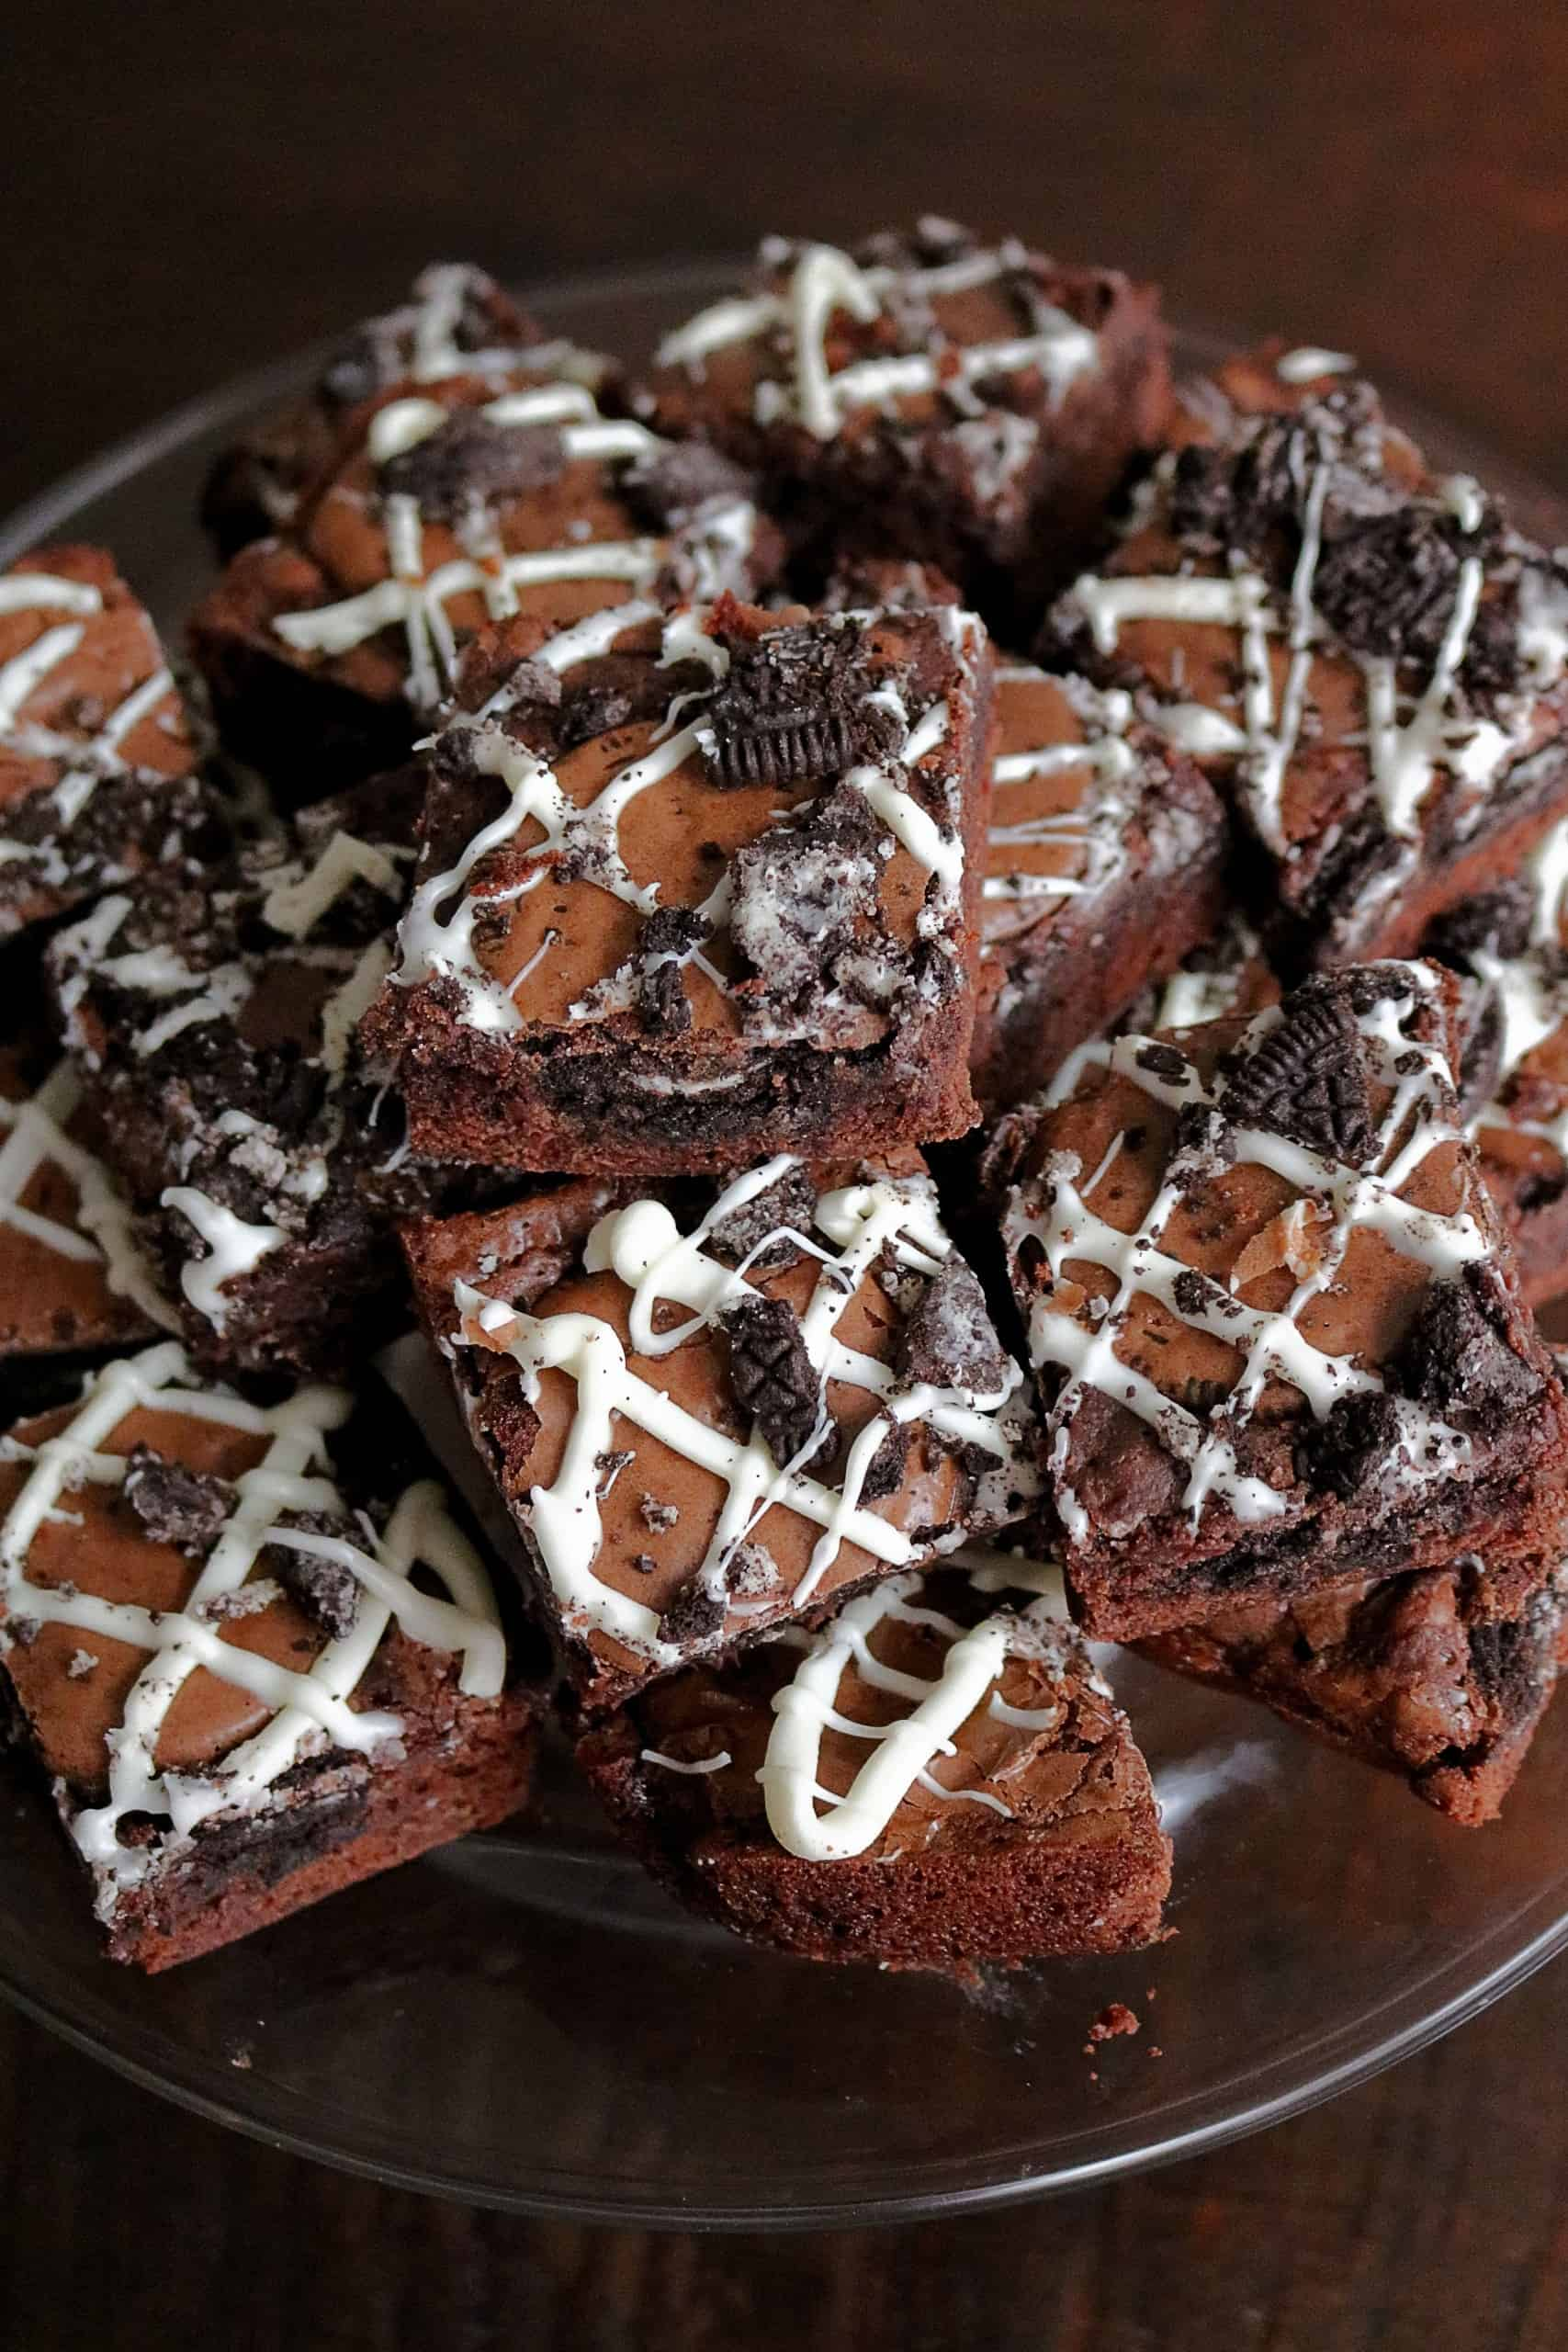 If you're a cookies and cream lover, then you'll love these Easy Fudgy Oreo Stuffed Brownies! These Oreo Brownies are made with a simple boxed brownie mix, stuffed and baked with Oreos inside them, and topped with crushed Oreo and a white chocolate drizzle. So easy and delicious! #oreobrownies #brownies #boxedbrownies #brownierecipe #oreo